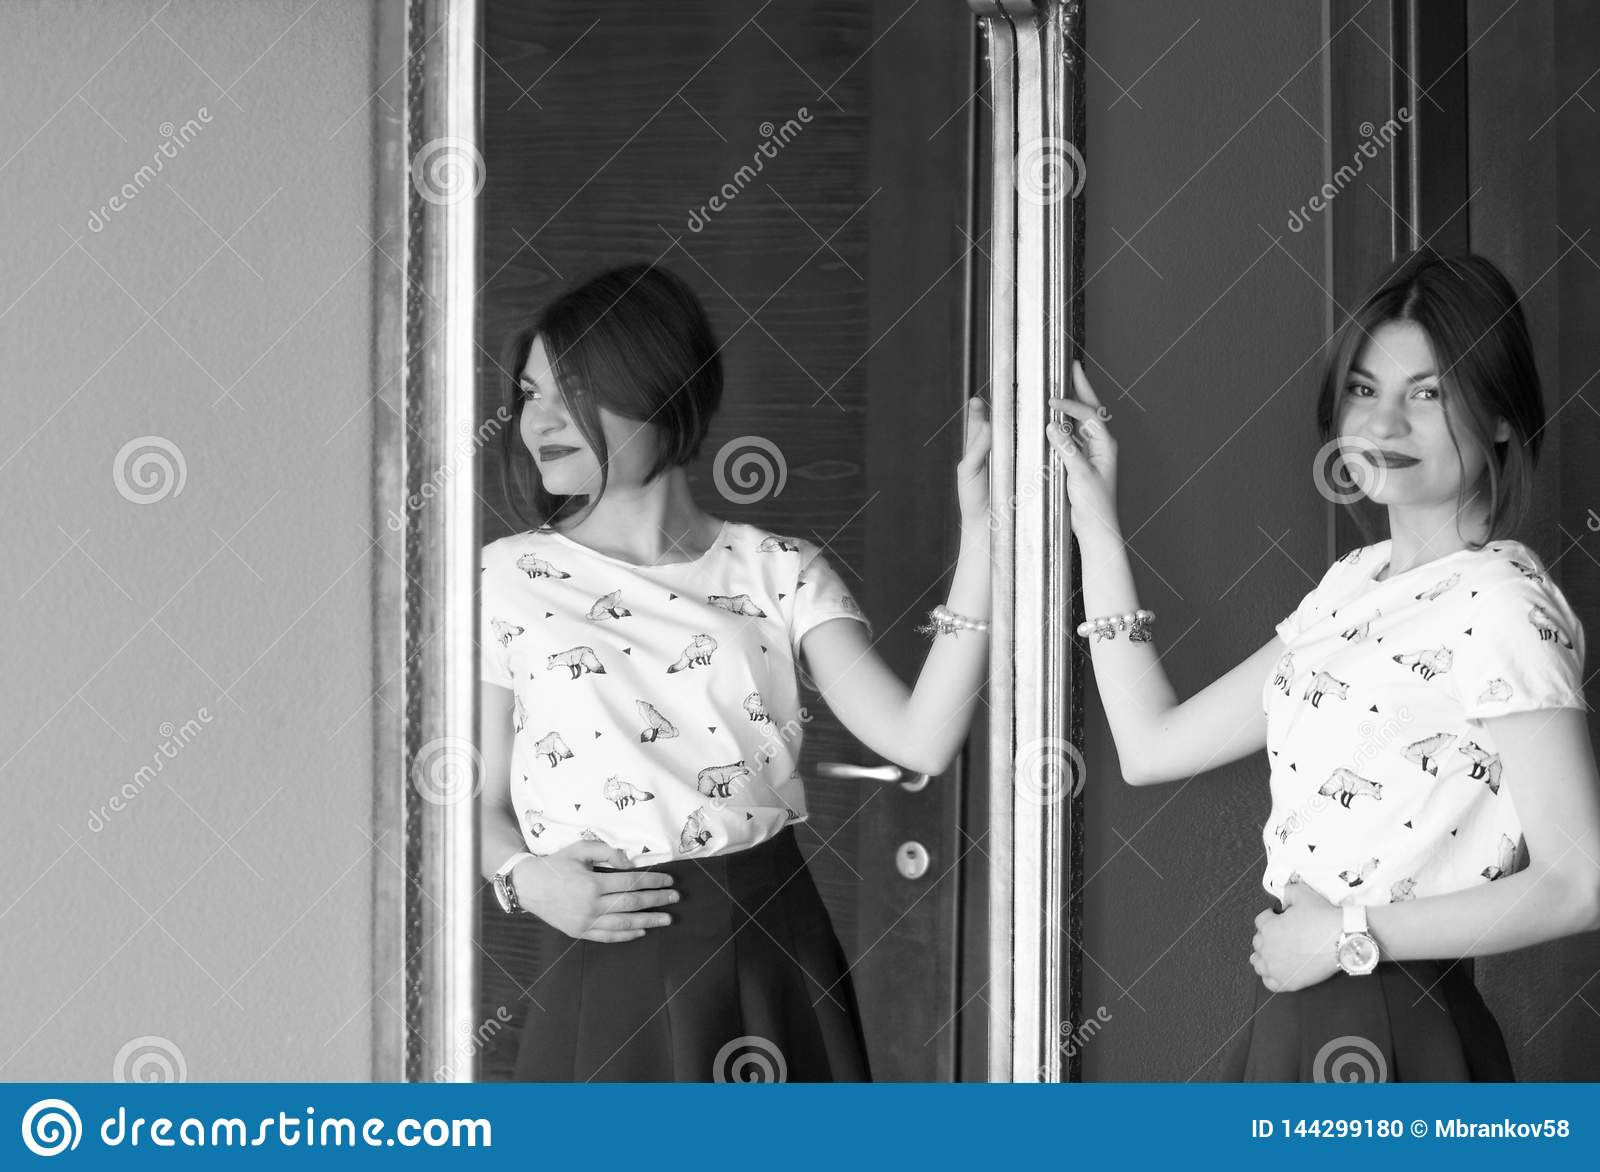 Black and white photo. The girl is seen from the side in the mirror.